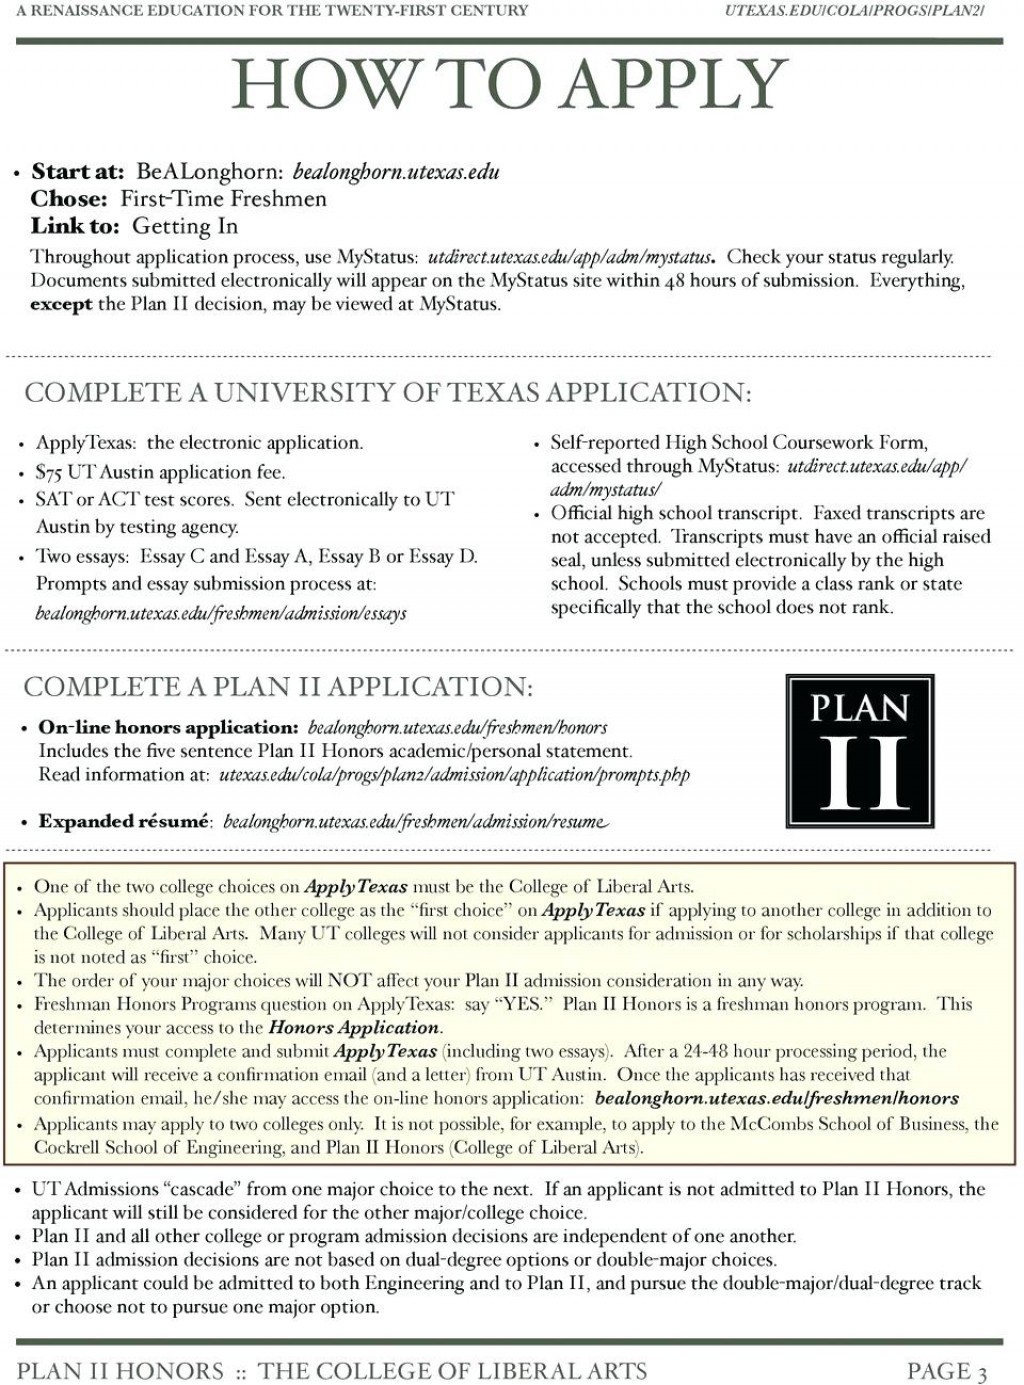 016 College Essay Requirements Example Application Examples Proess Quickplumber Us Apply Texas Require Outstanding Board 2017 Boston Sat Requirement Large